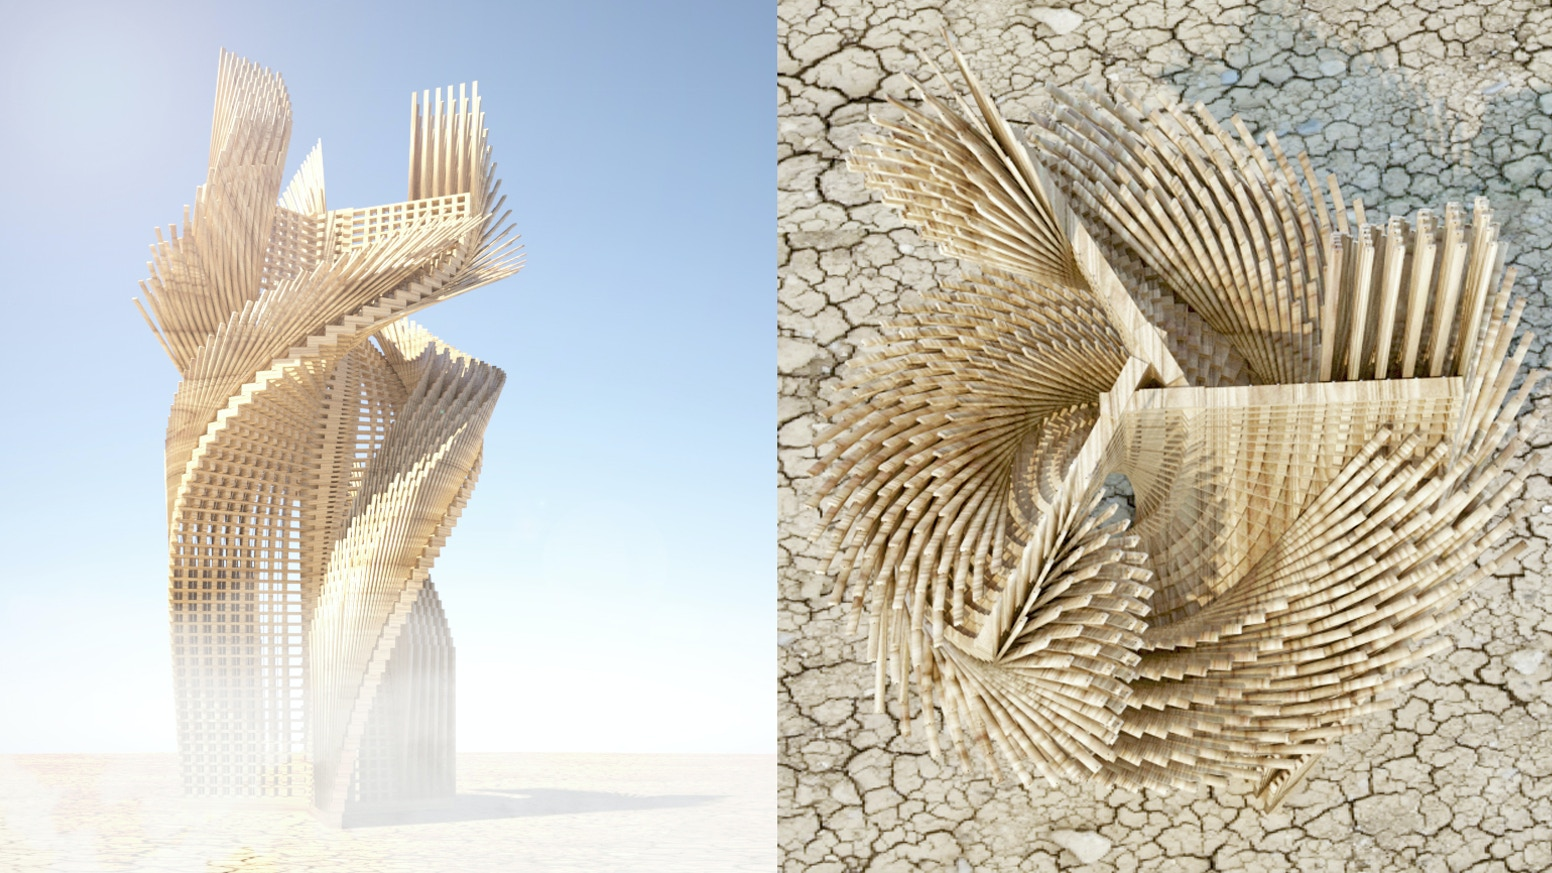 Tangential Dreams is an Architectural Installation for the Burning Man Festival 2016 and a statement for a new kind of Architecture.